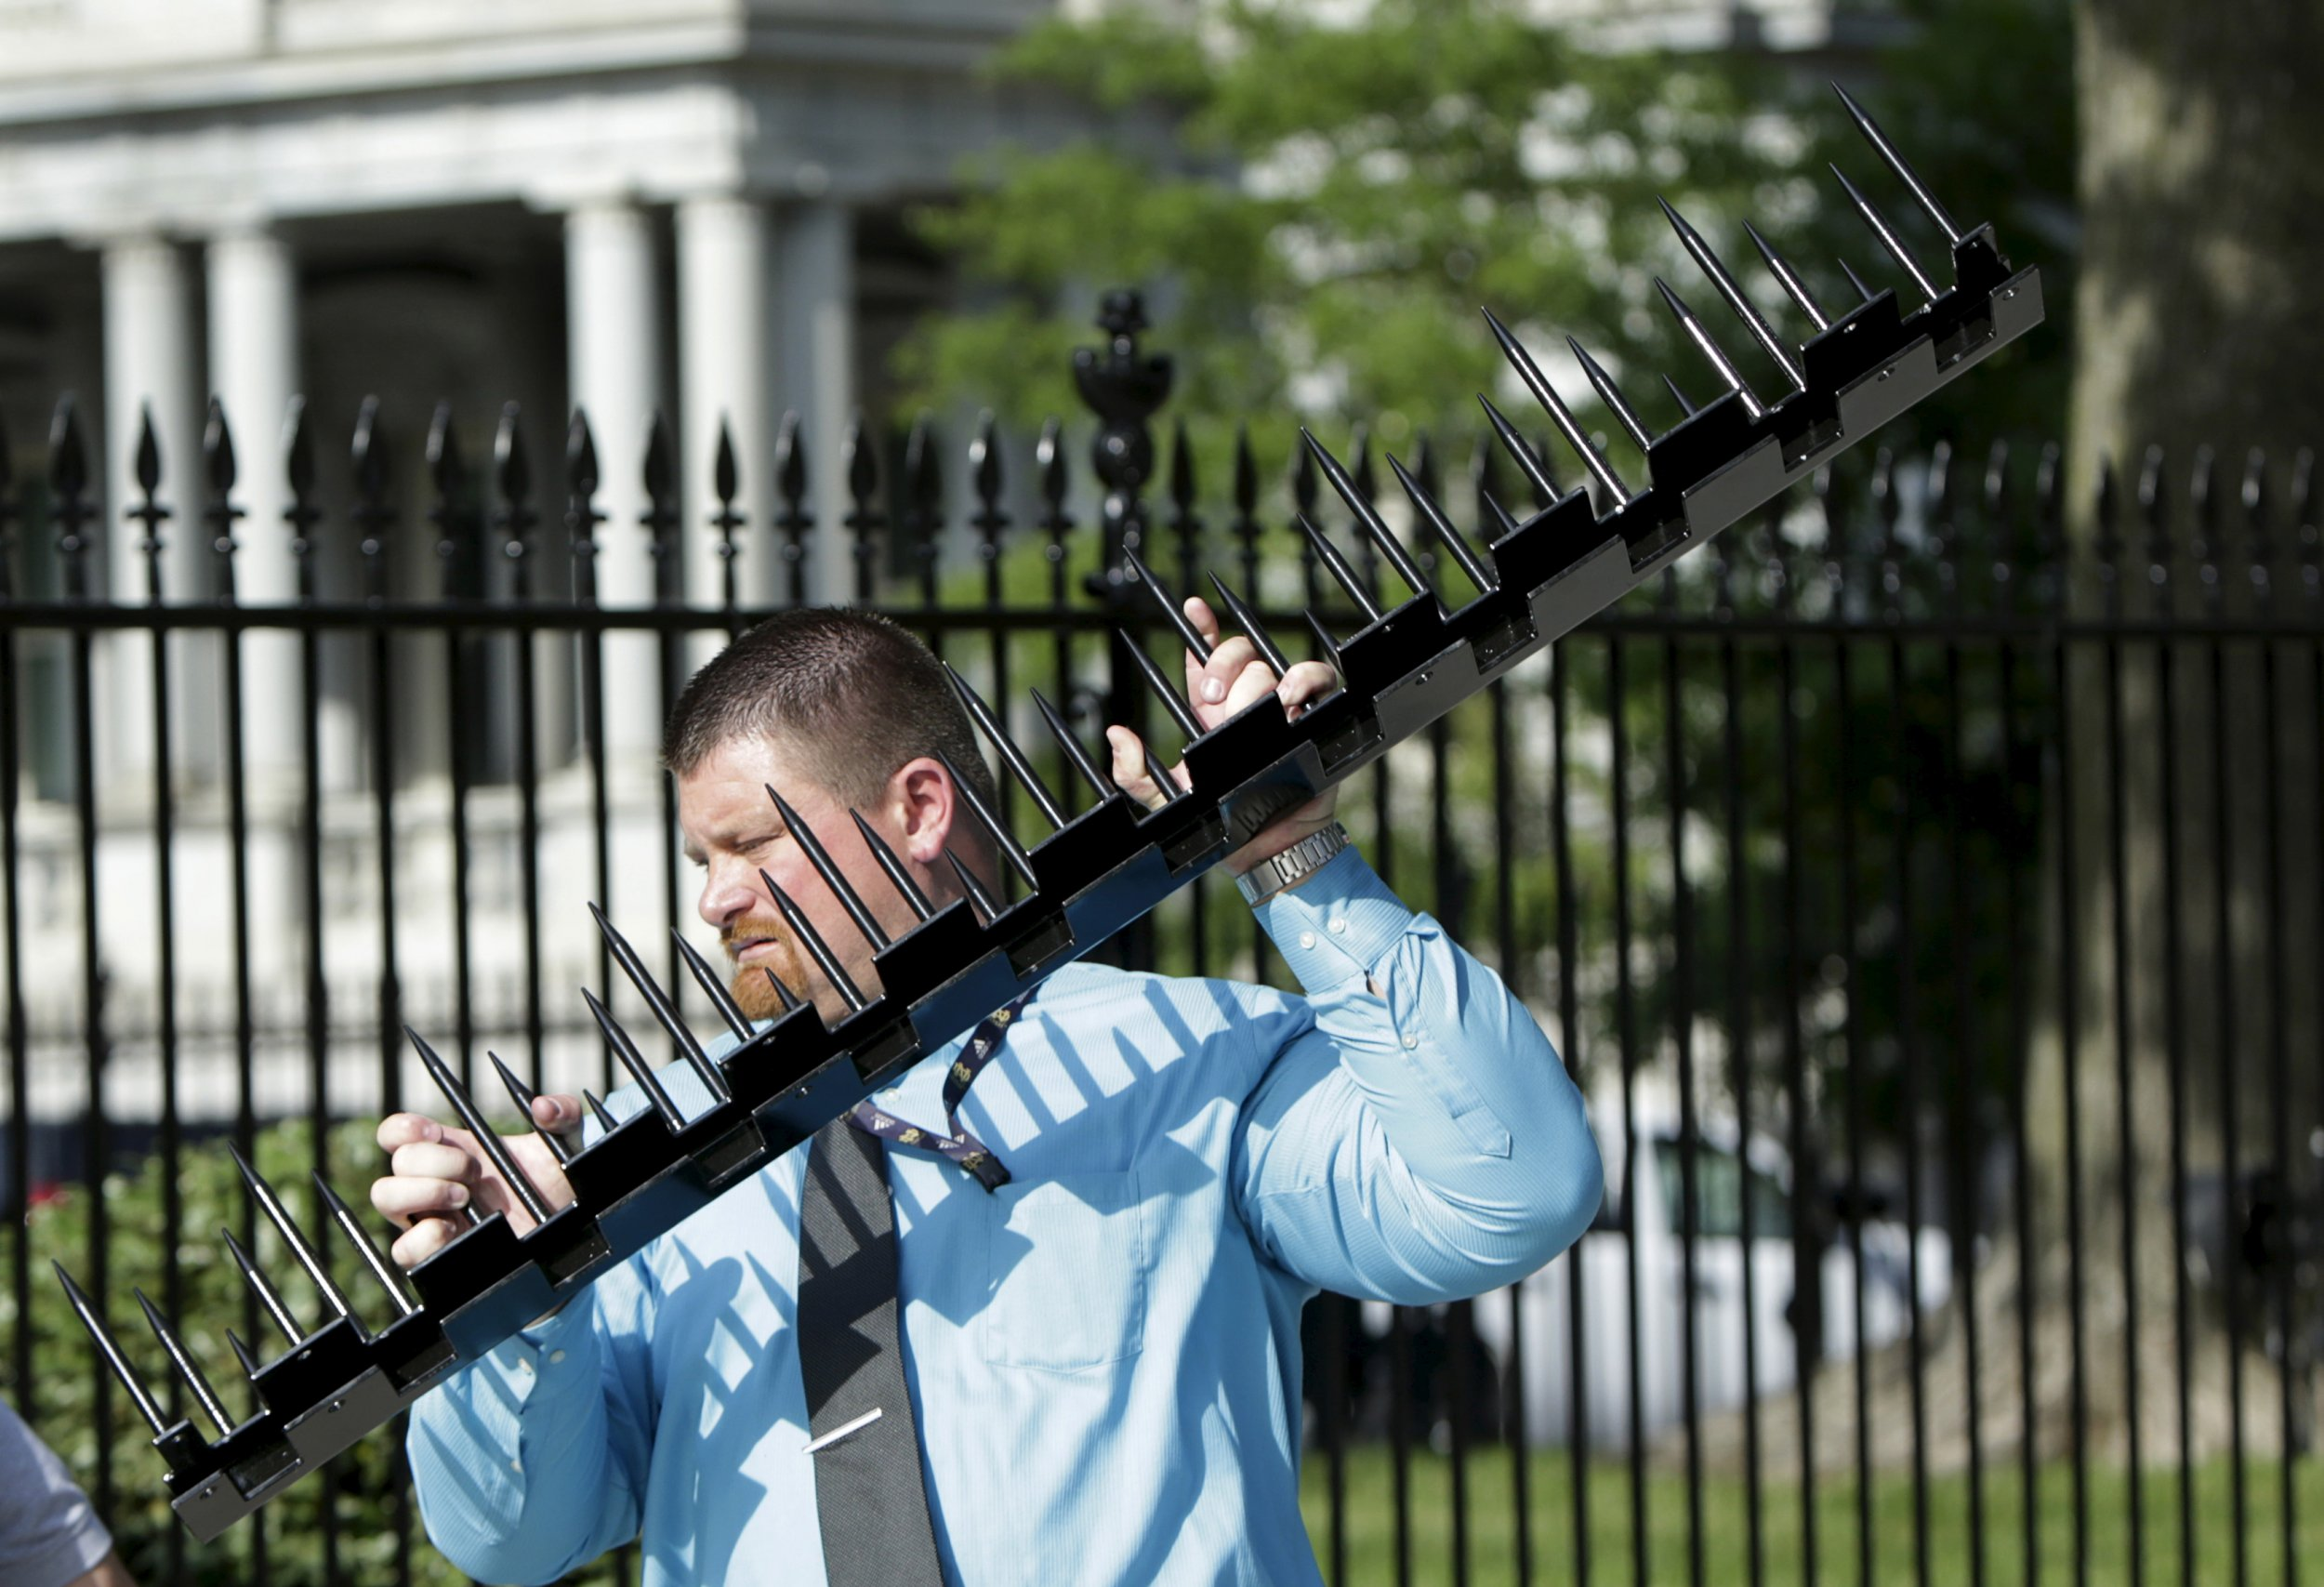 White House Fence Gets Spiky Security Enhancement